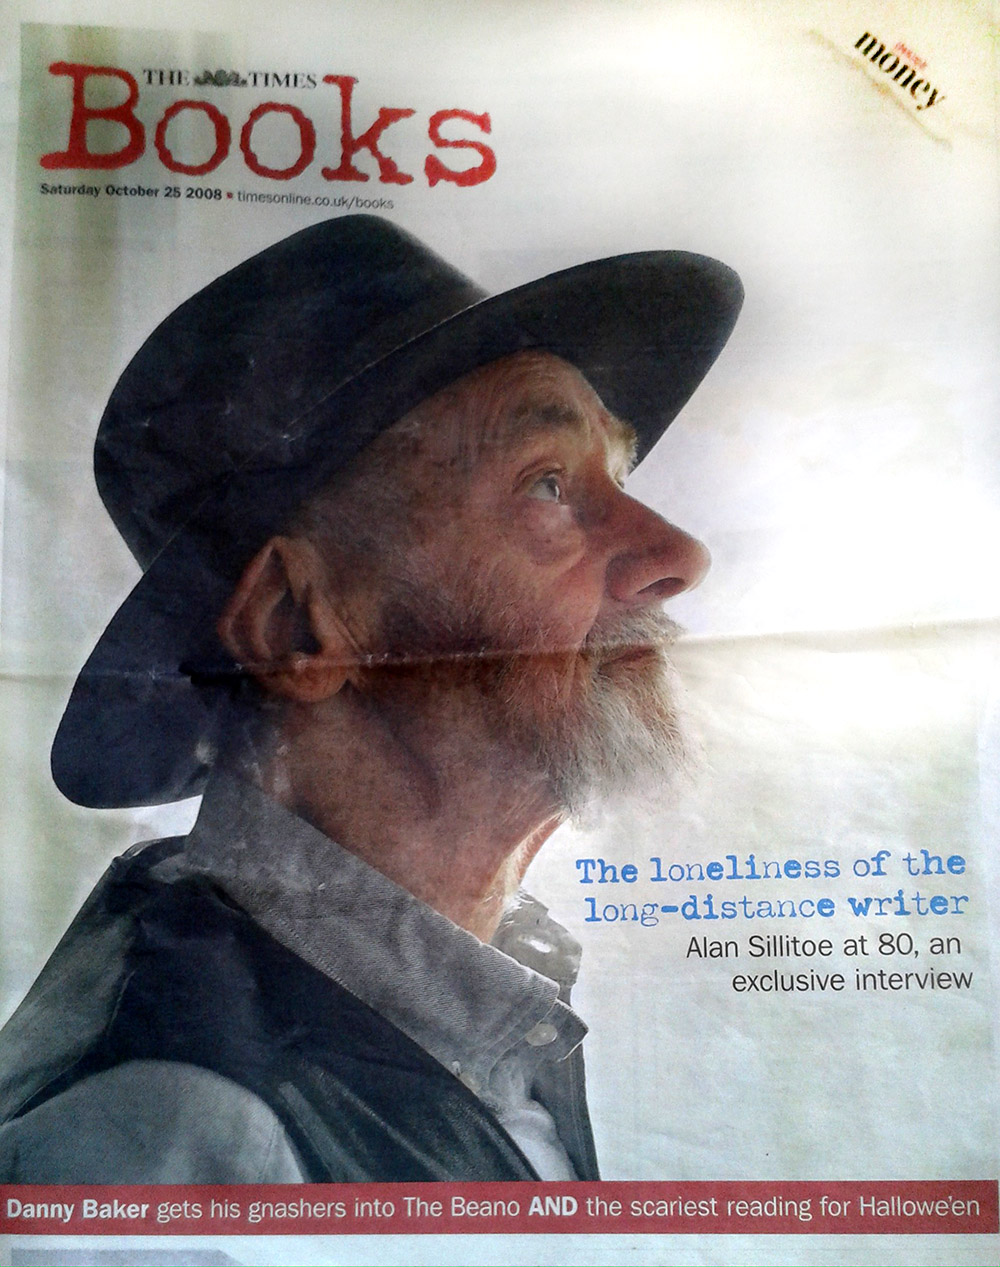 alan sillitoe 80_Mark Hodkinson interview_Times cover